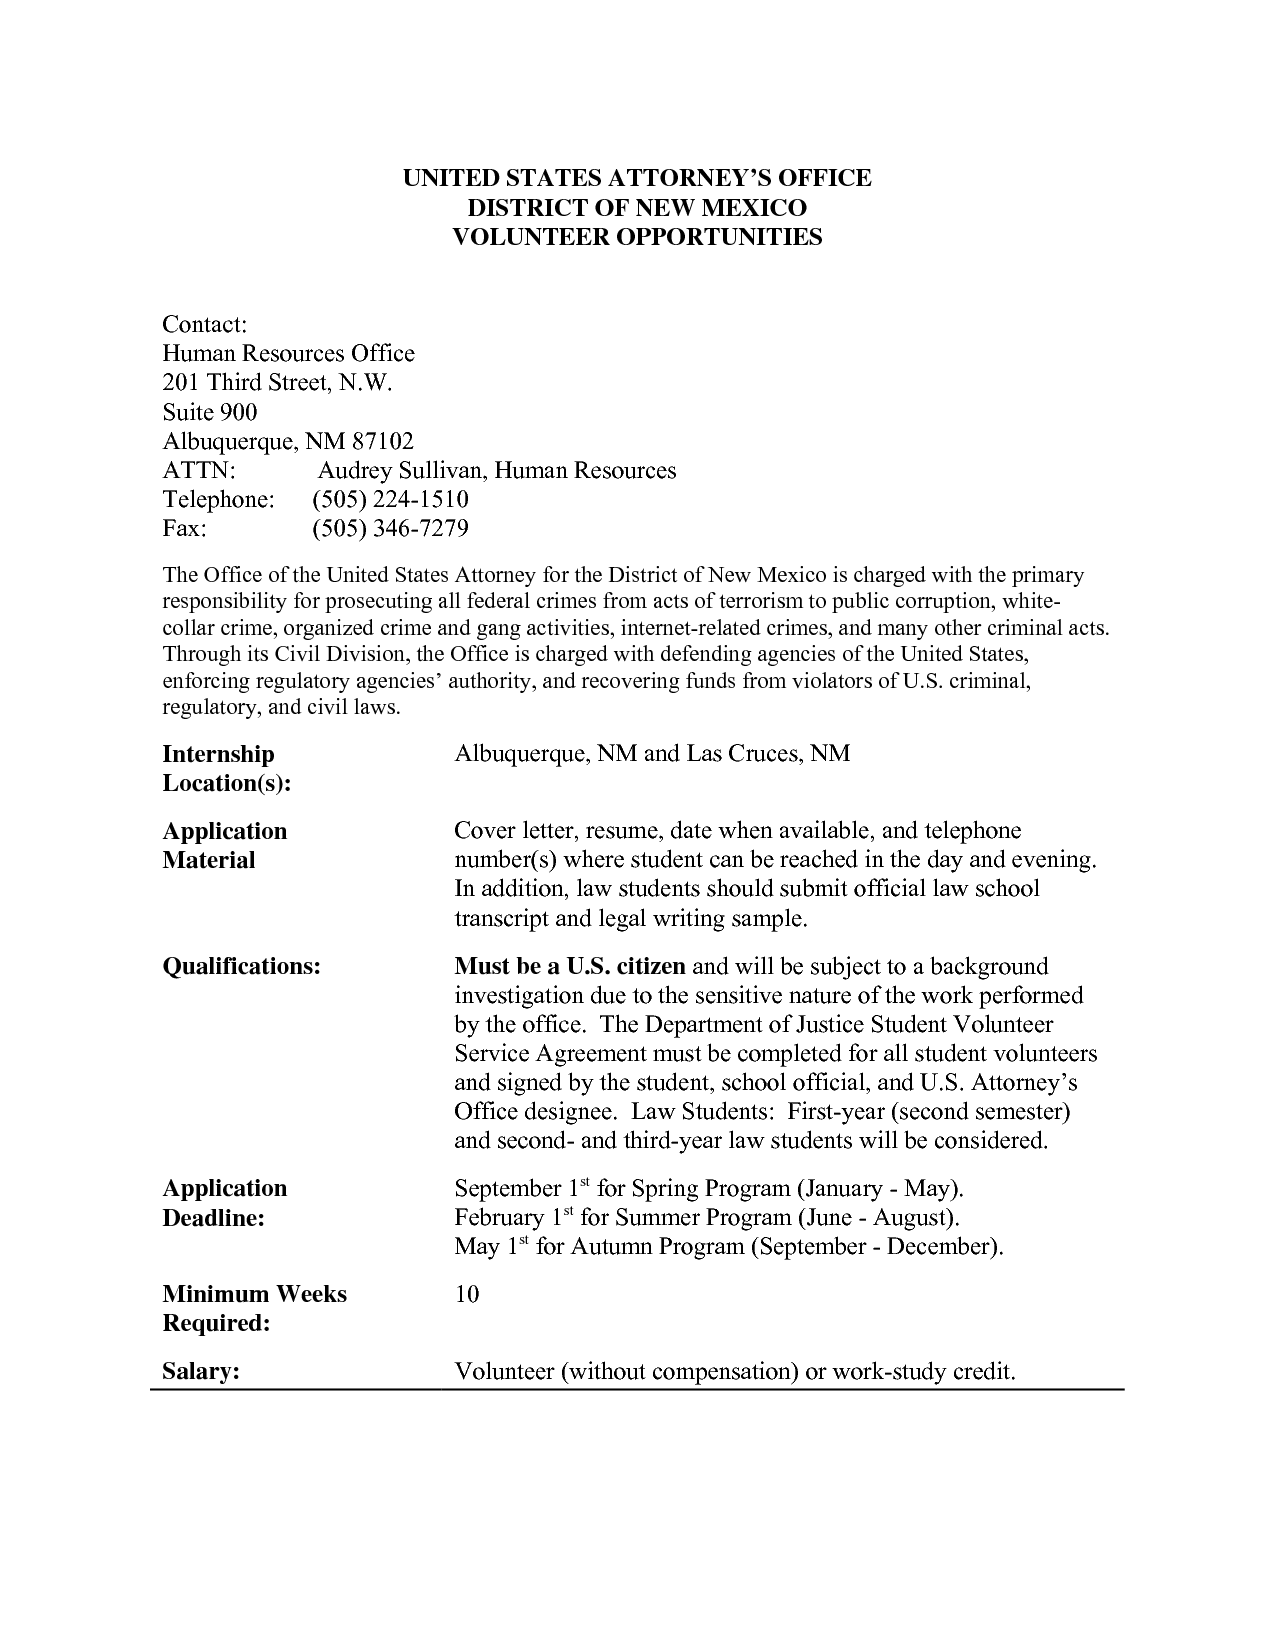 Nice Volunteer Work On ResumeVolunteer Work On Resume Application Letter Sample